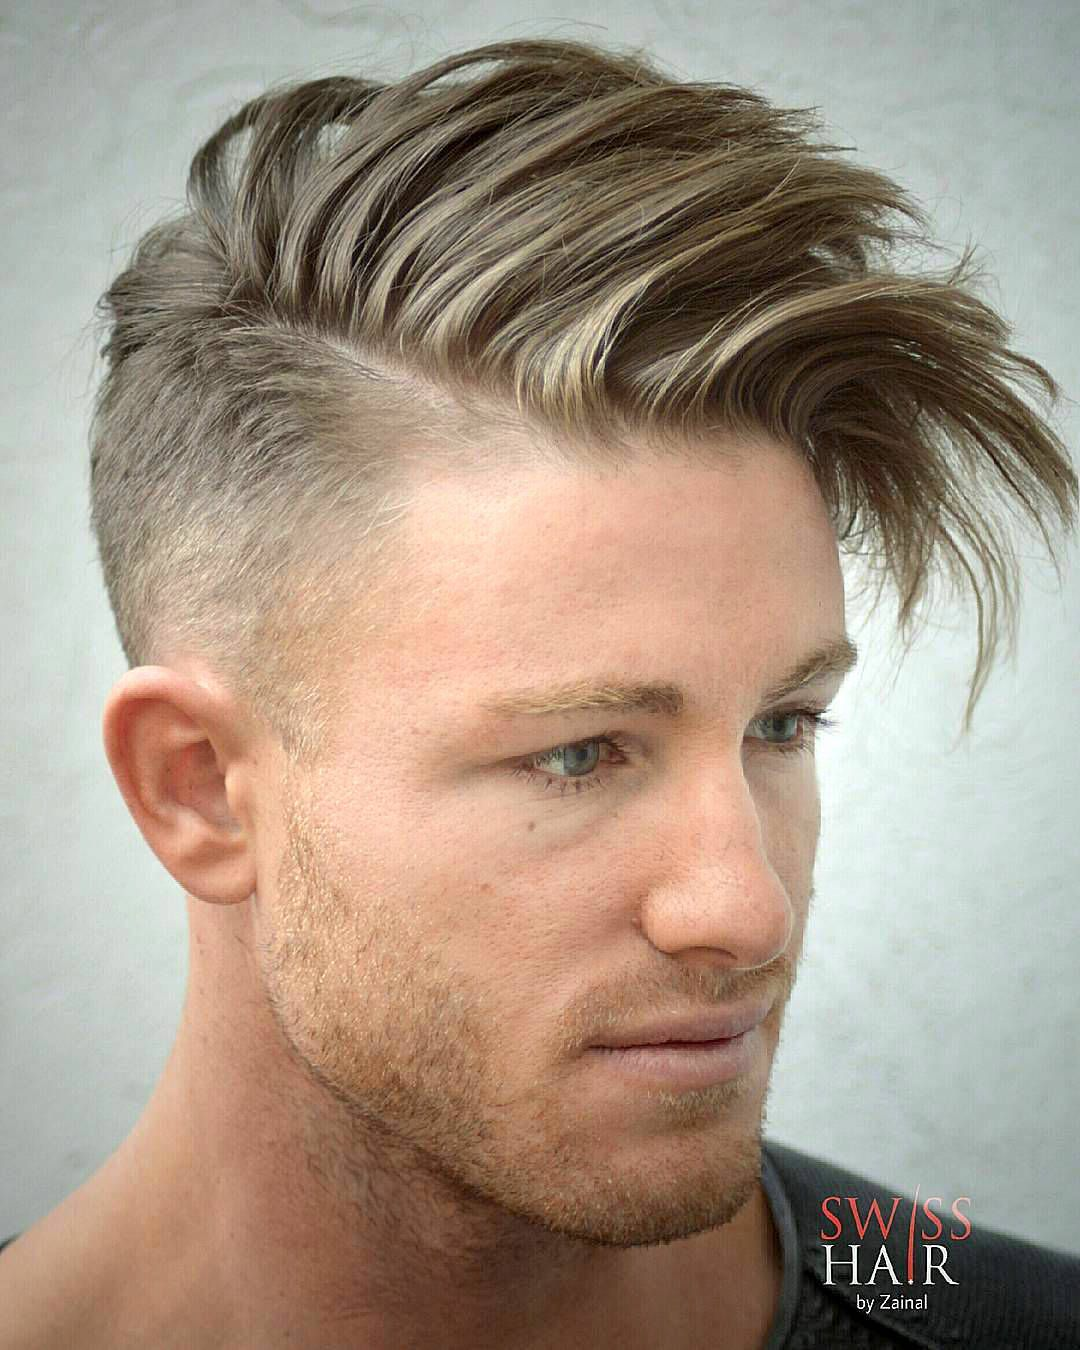 20 long hairstyles for men to get in 2018 | men | hairstyle